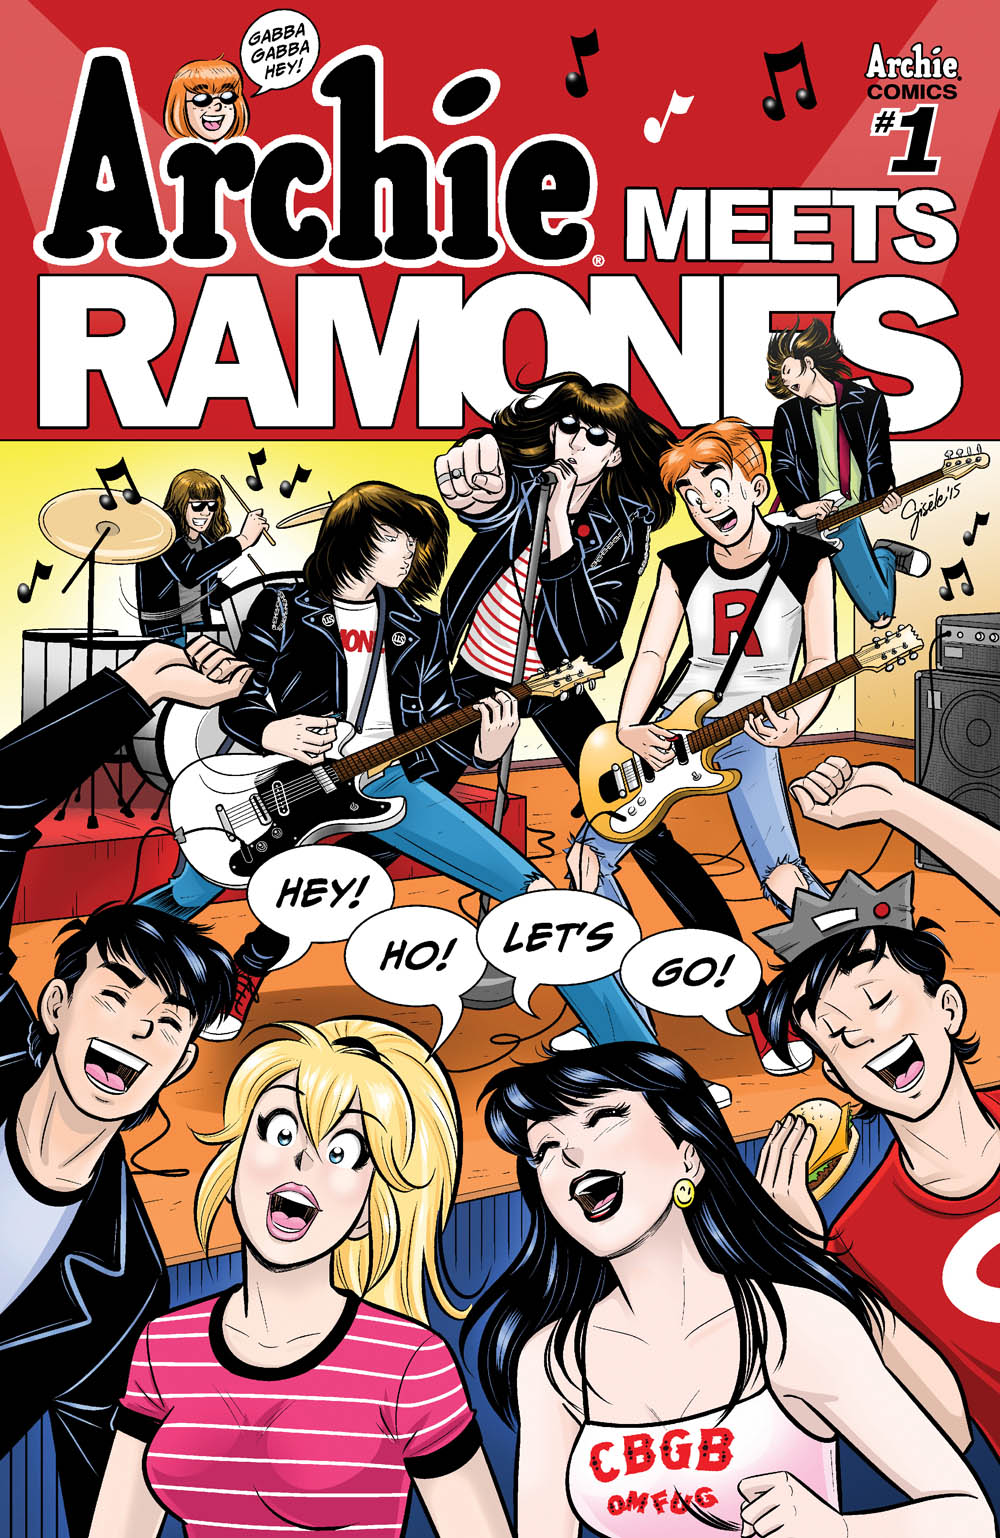 Take a first look inside ARCHIE MEETS RAMONES #1 and other